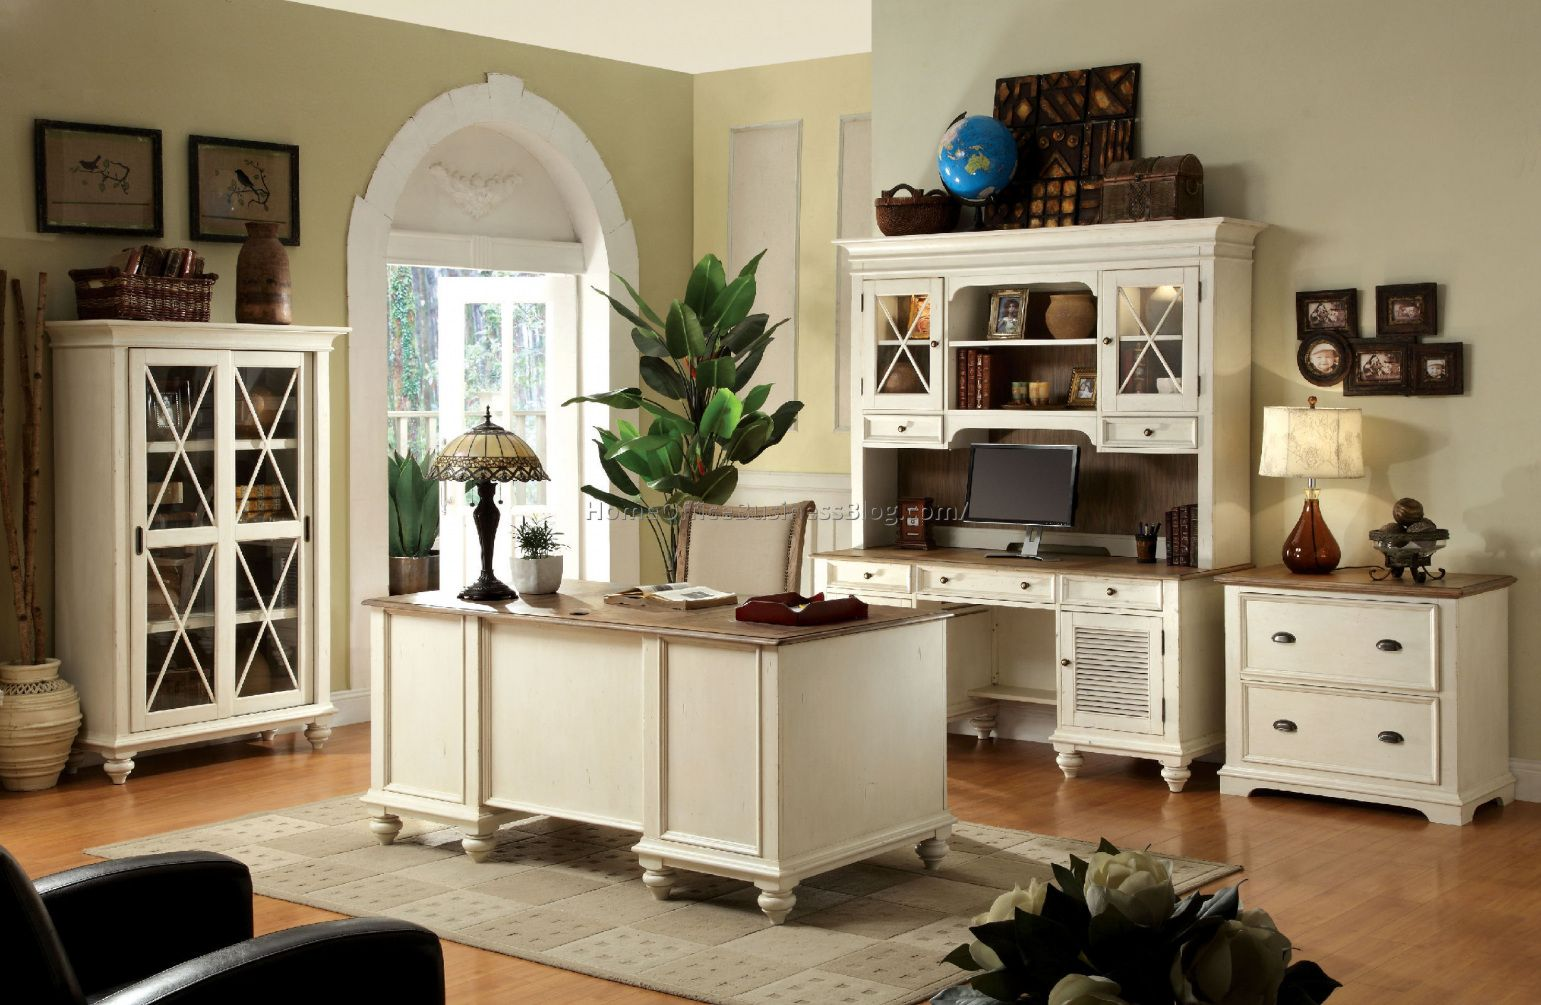 2019 Rustic Home Office Desk - Best Home Furniture Check more at http://www.shophyperformance.com/rustic-home-office-desk/